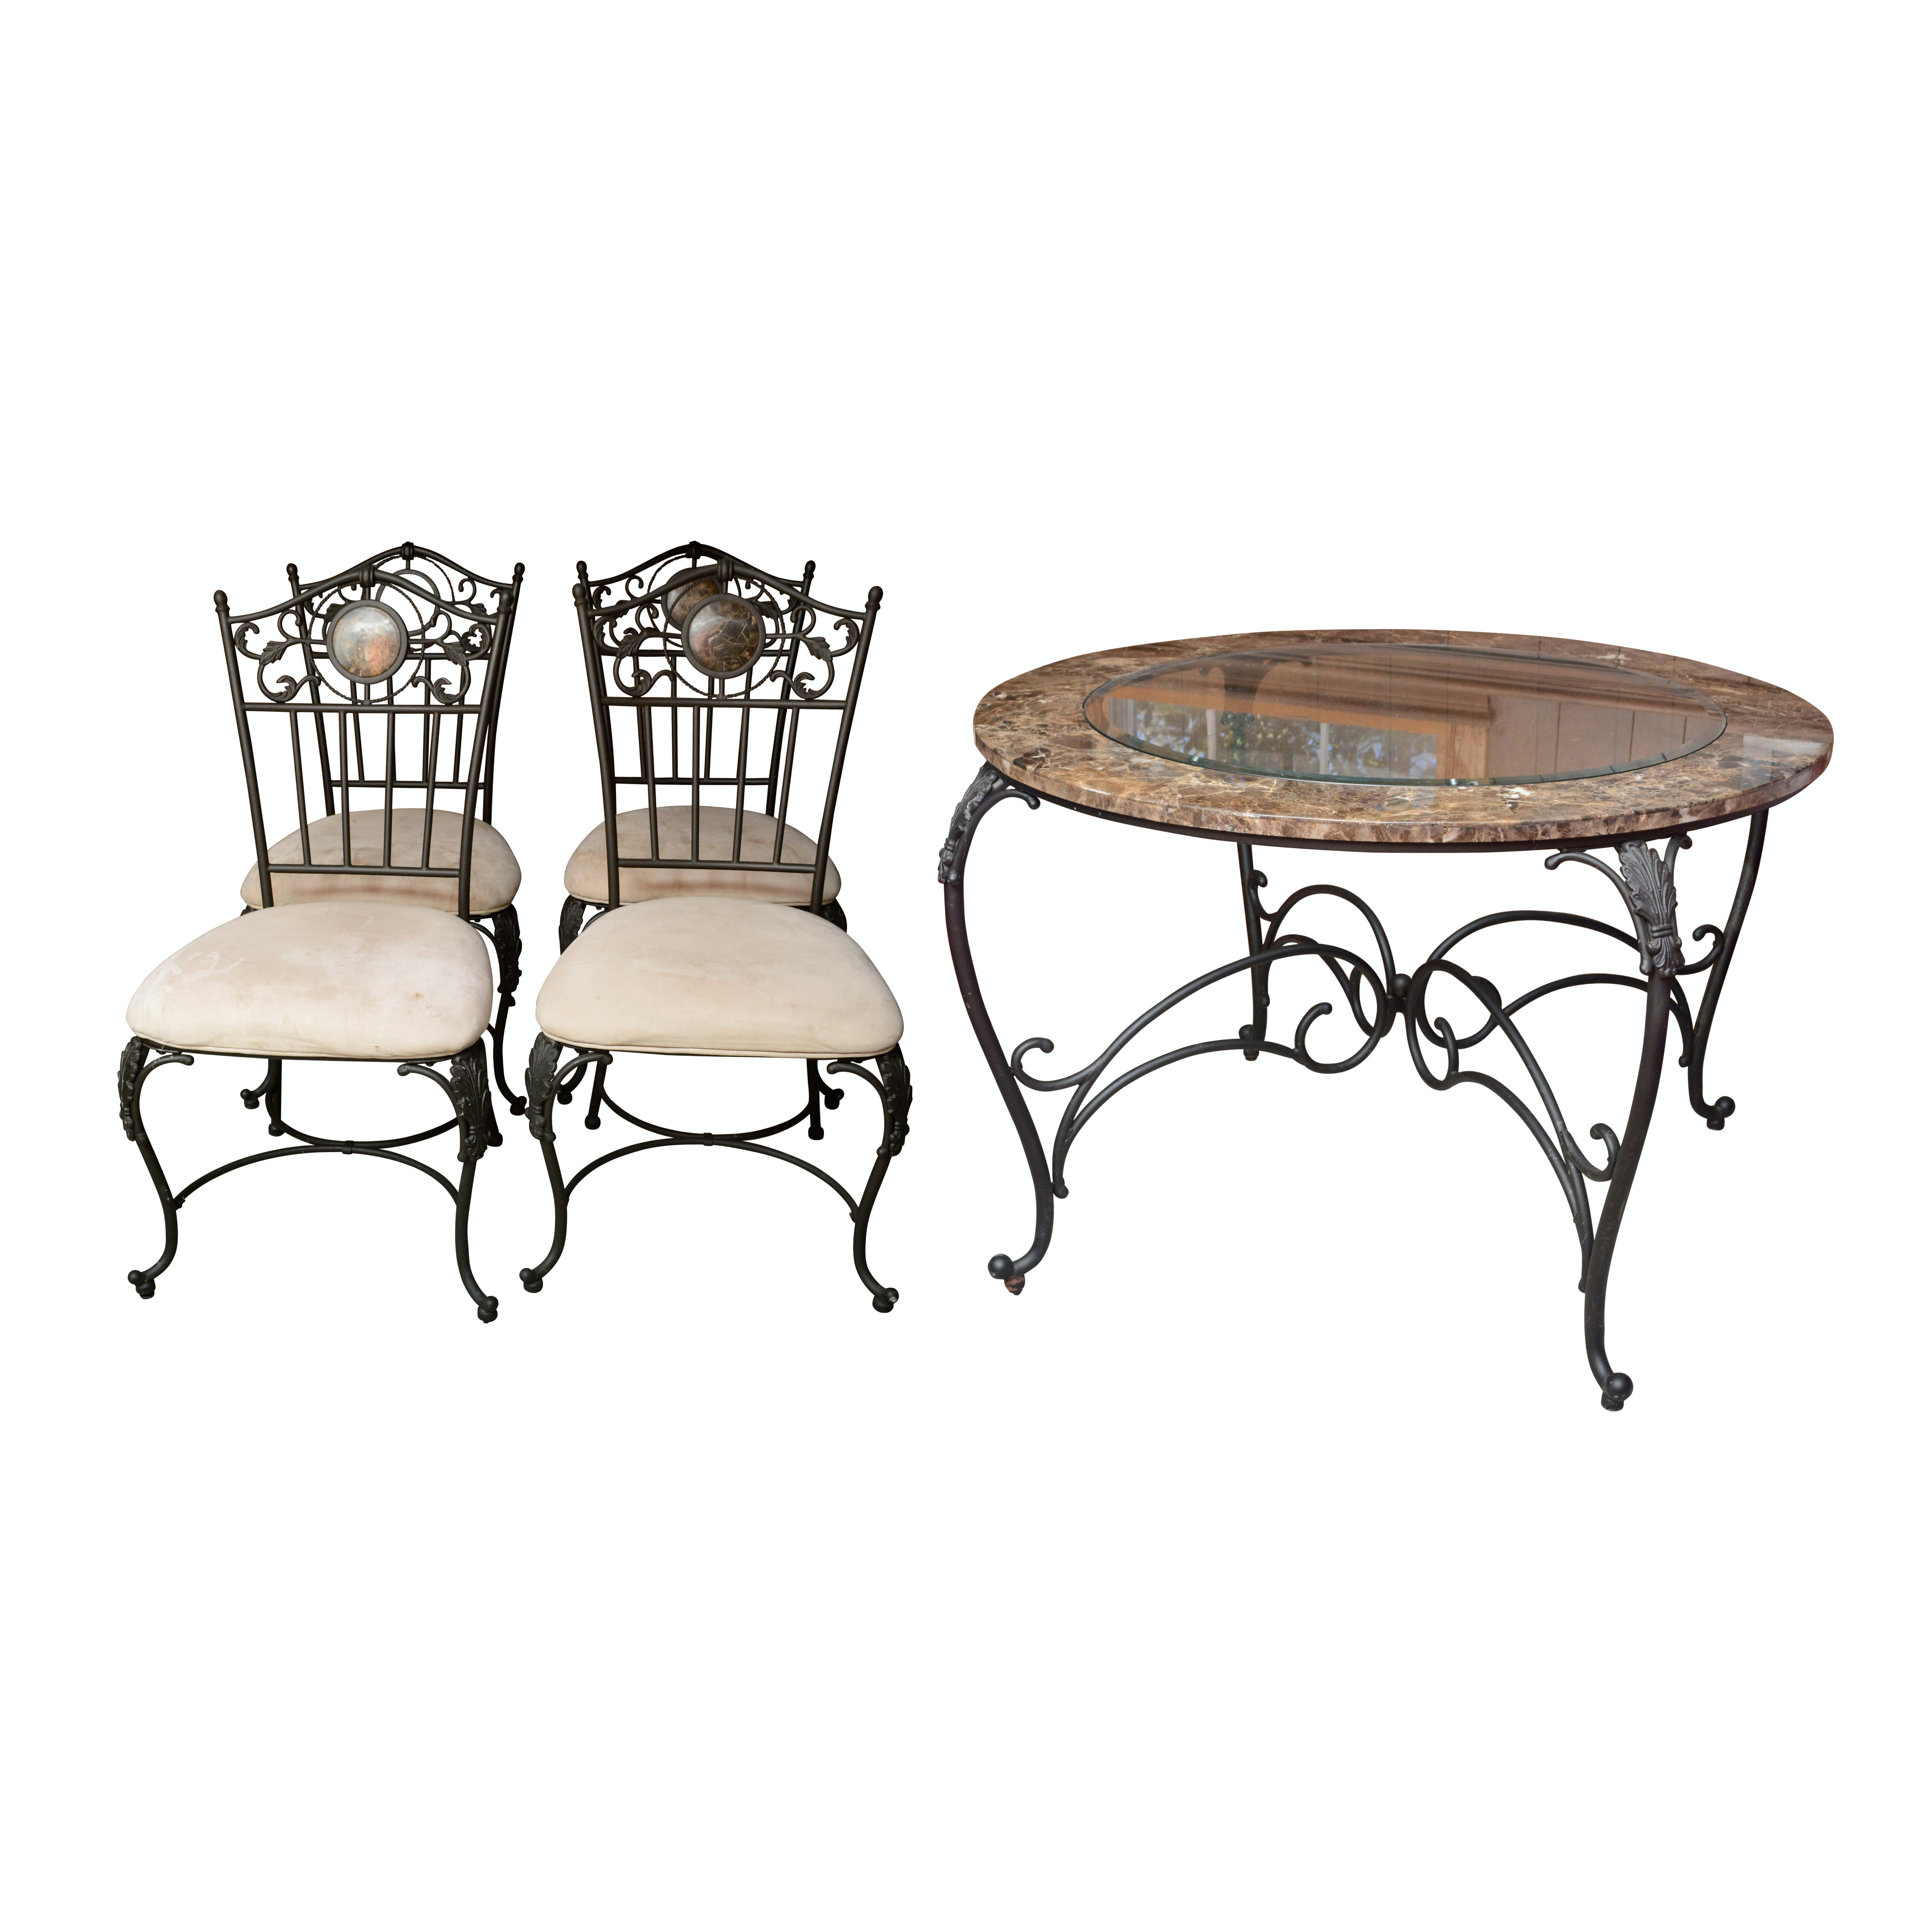 French Provincial Style Occasional Table with Chairs